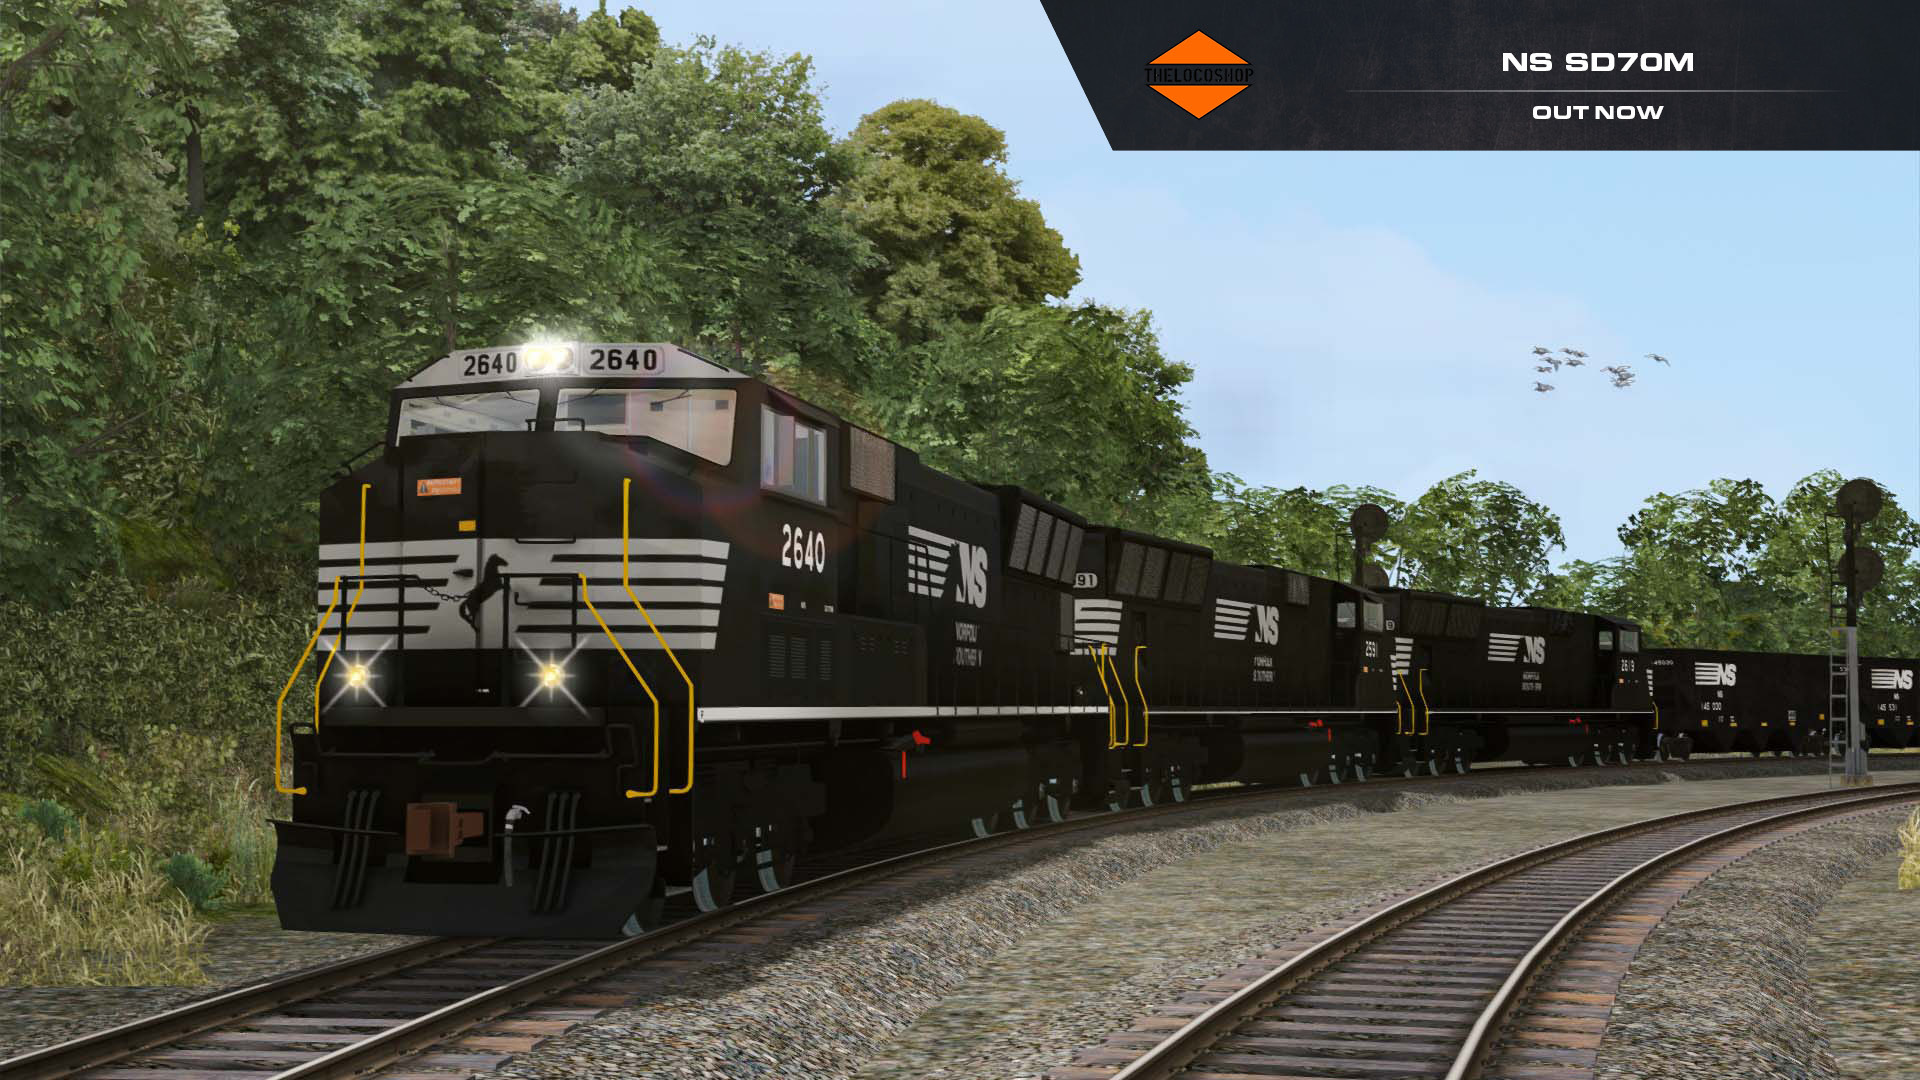 The Loco Shops' Norfolk Southern SD70M Out Now!